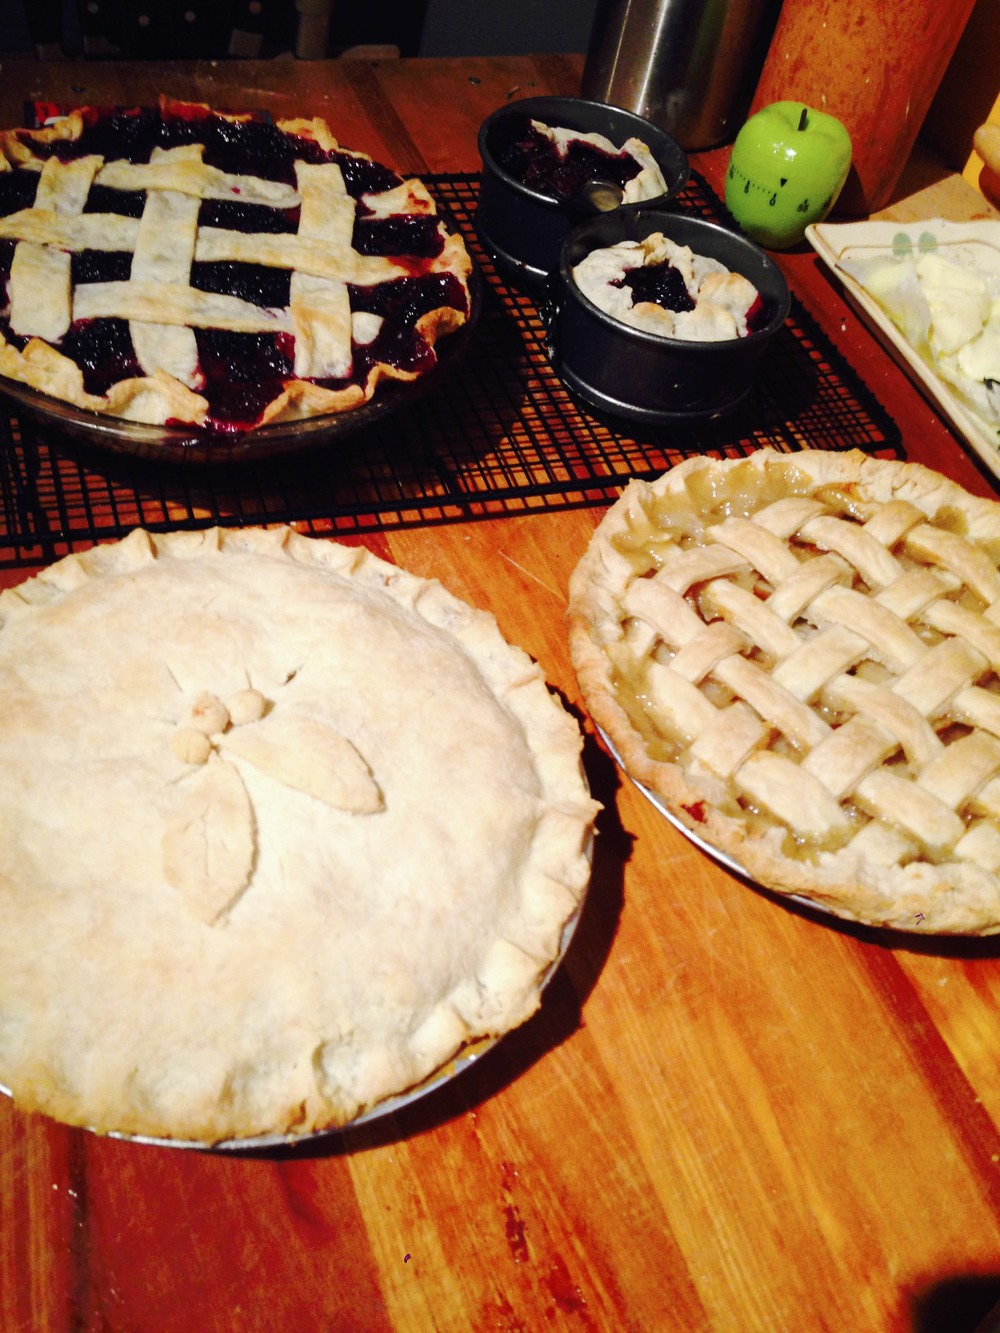 The Thirsty Fork specializes in seasonal fruit pies from our Sacramento farmers' bounty.  Consider including some handmade pies, free of artificial ingredients, on the menu for your catered event.